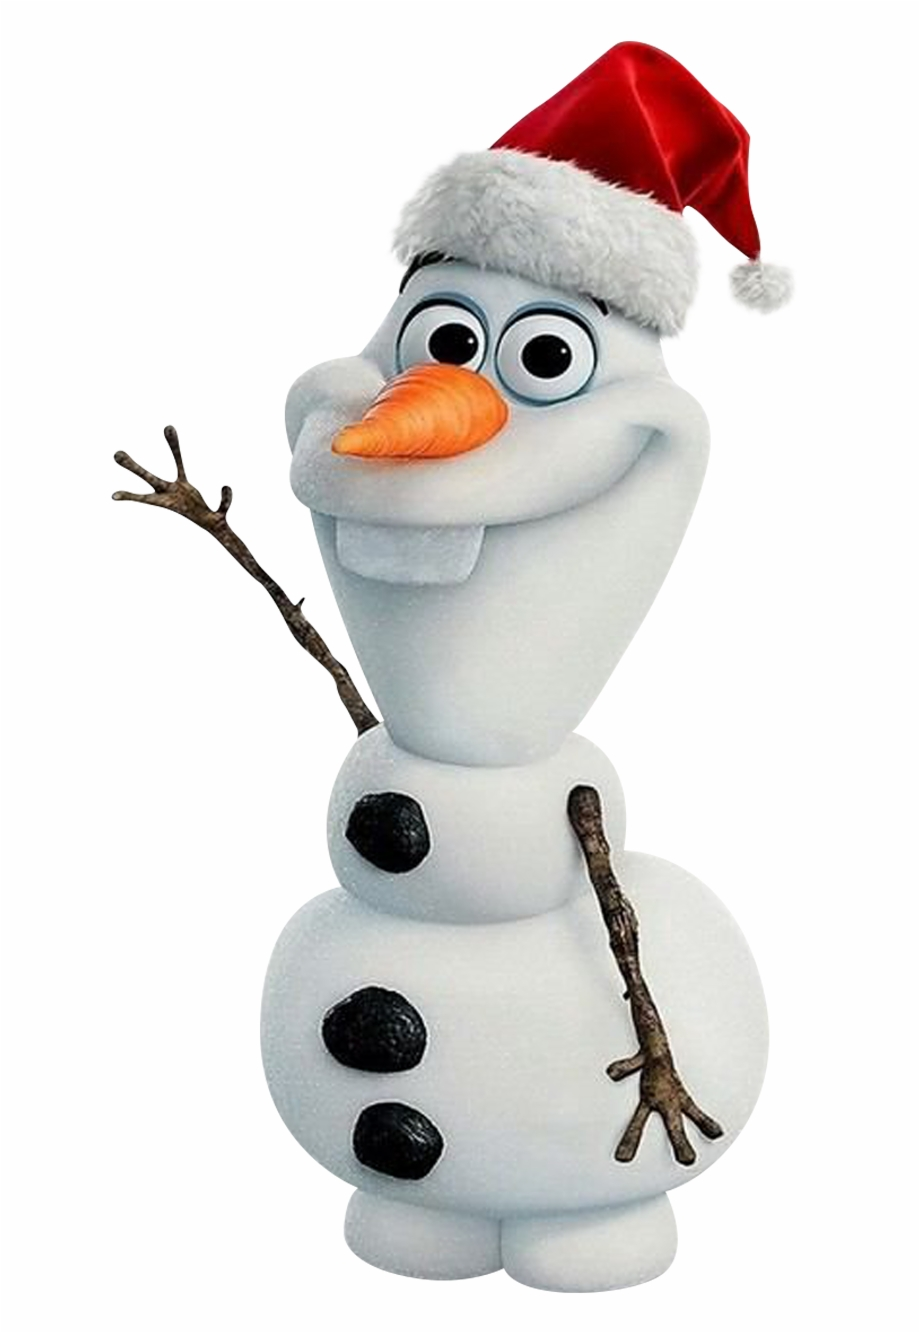 Olaf Snowman Png Transparent Image Olaf Frozen Christmas.